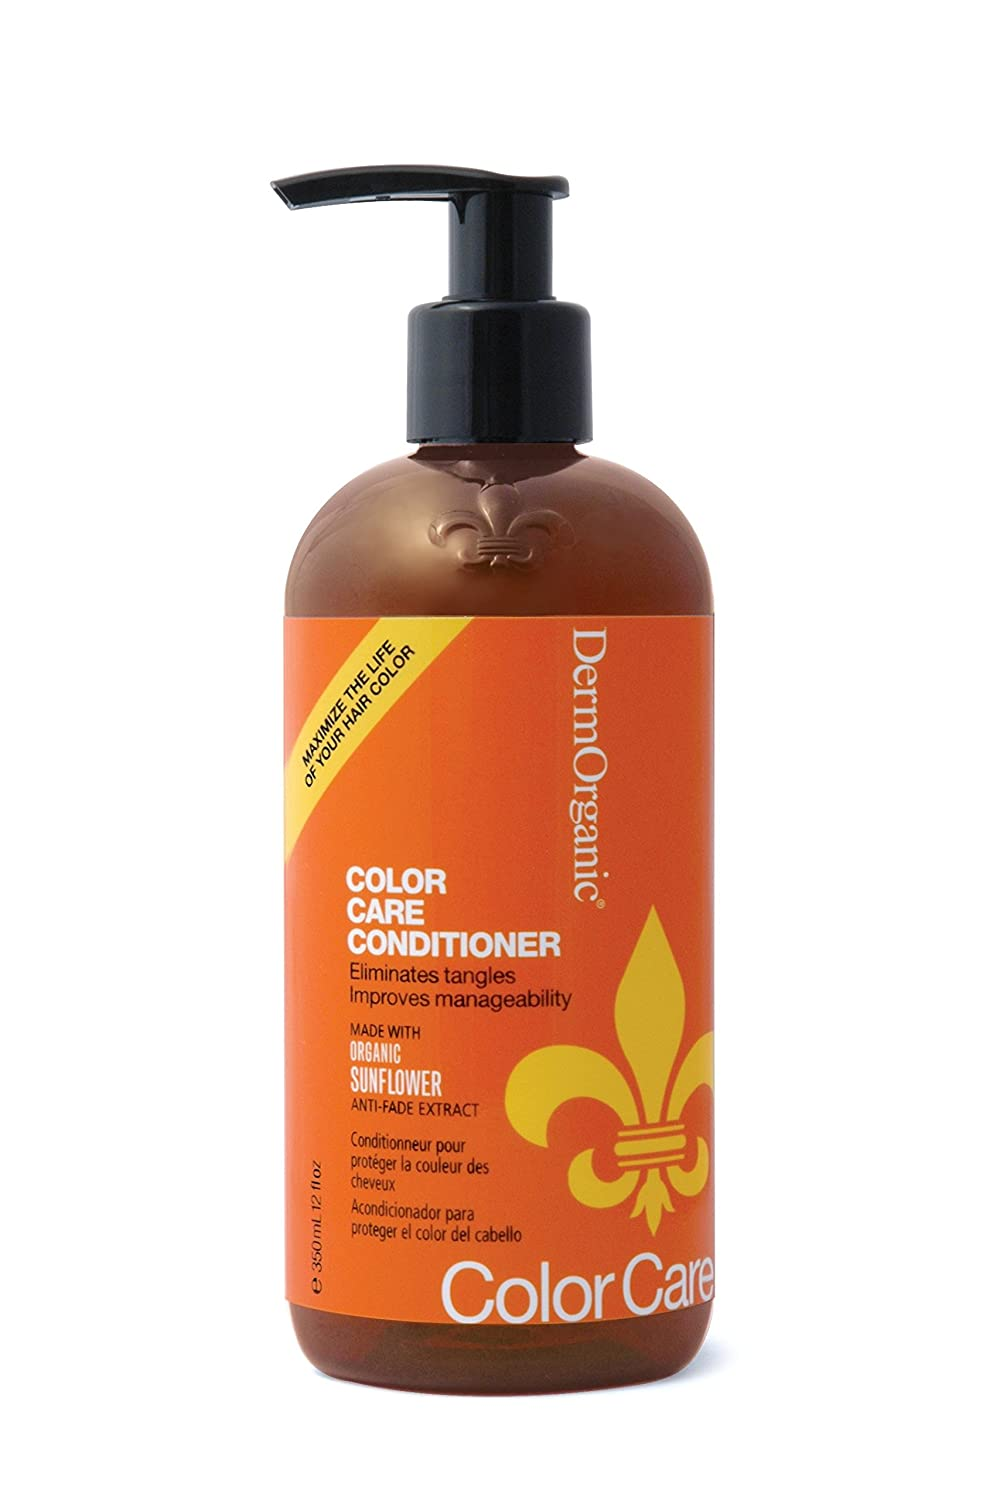 DermOrganic Sulfate-Free Color Care Conditioner, 12 oz.